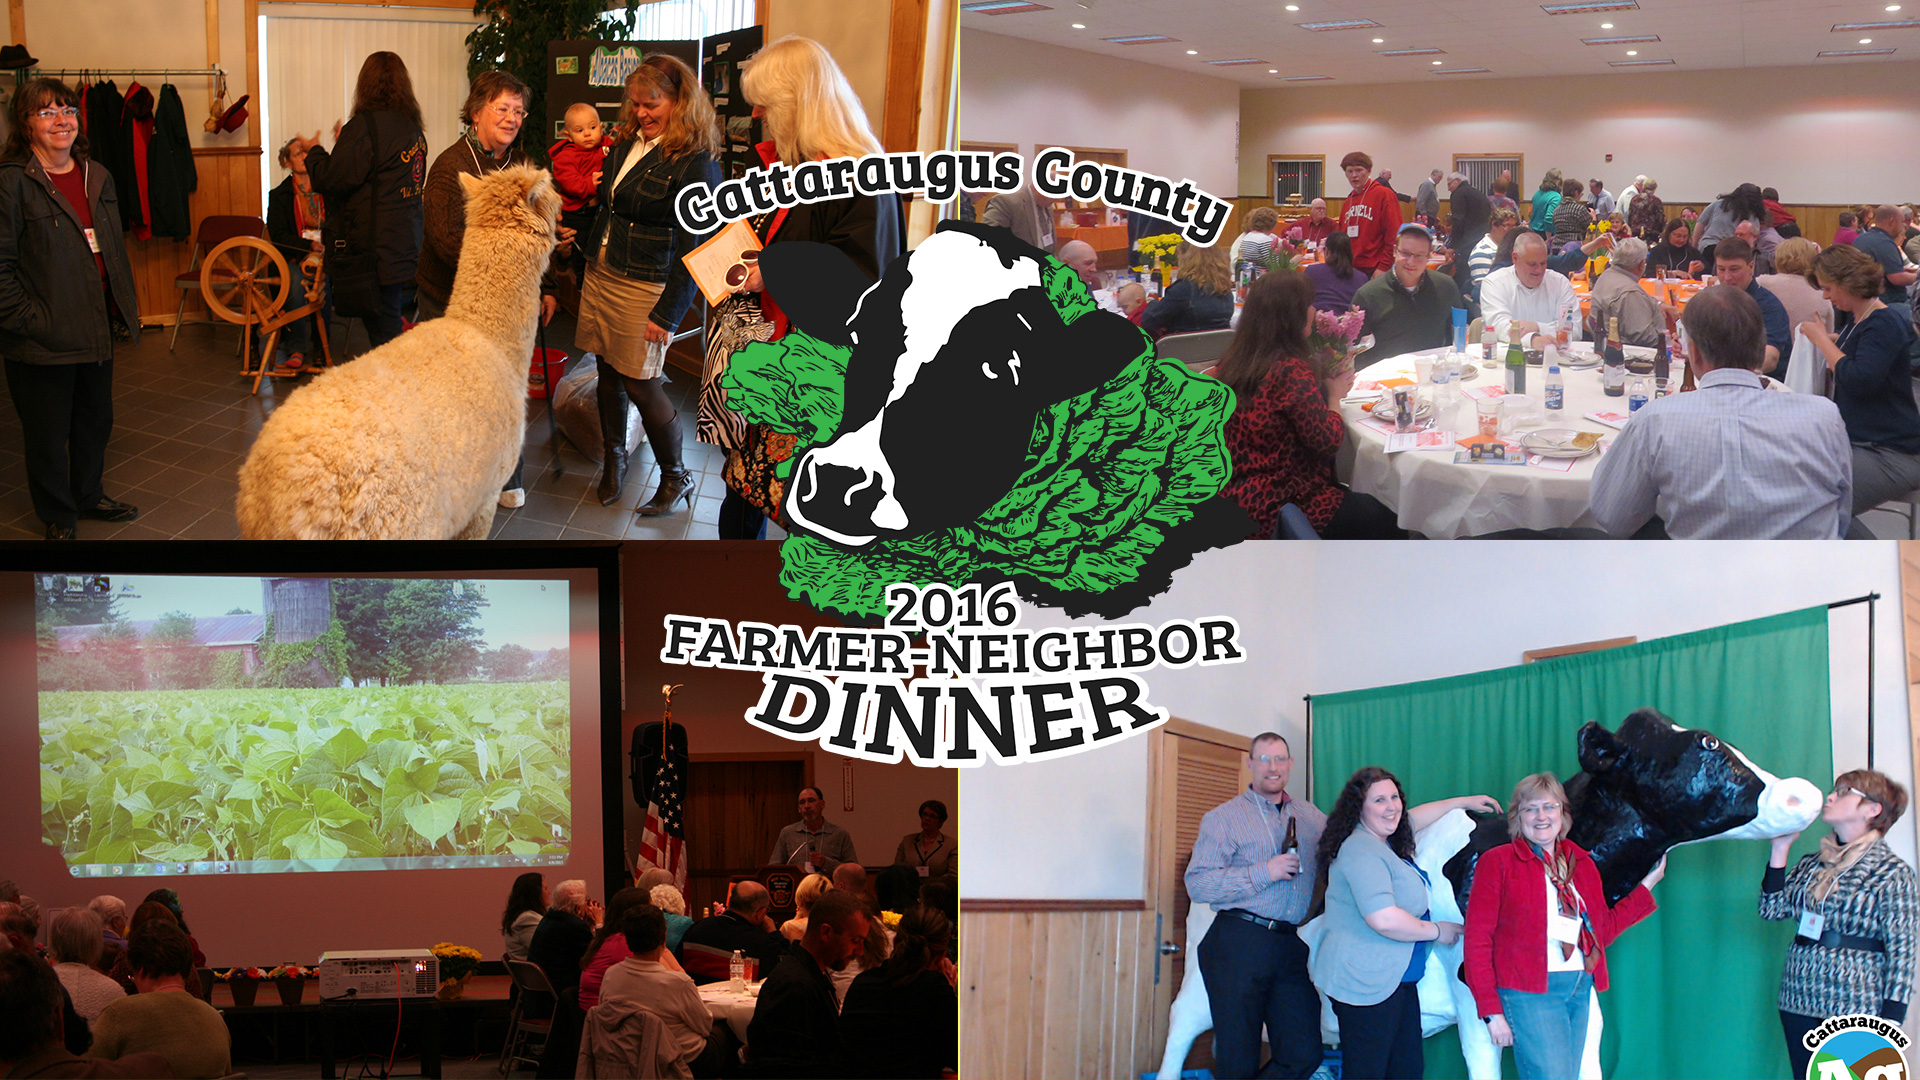 Farmer-Neighbor Dinner on April 13, 2016